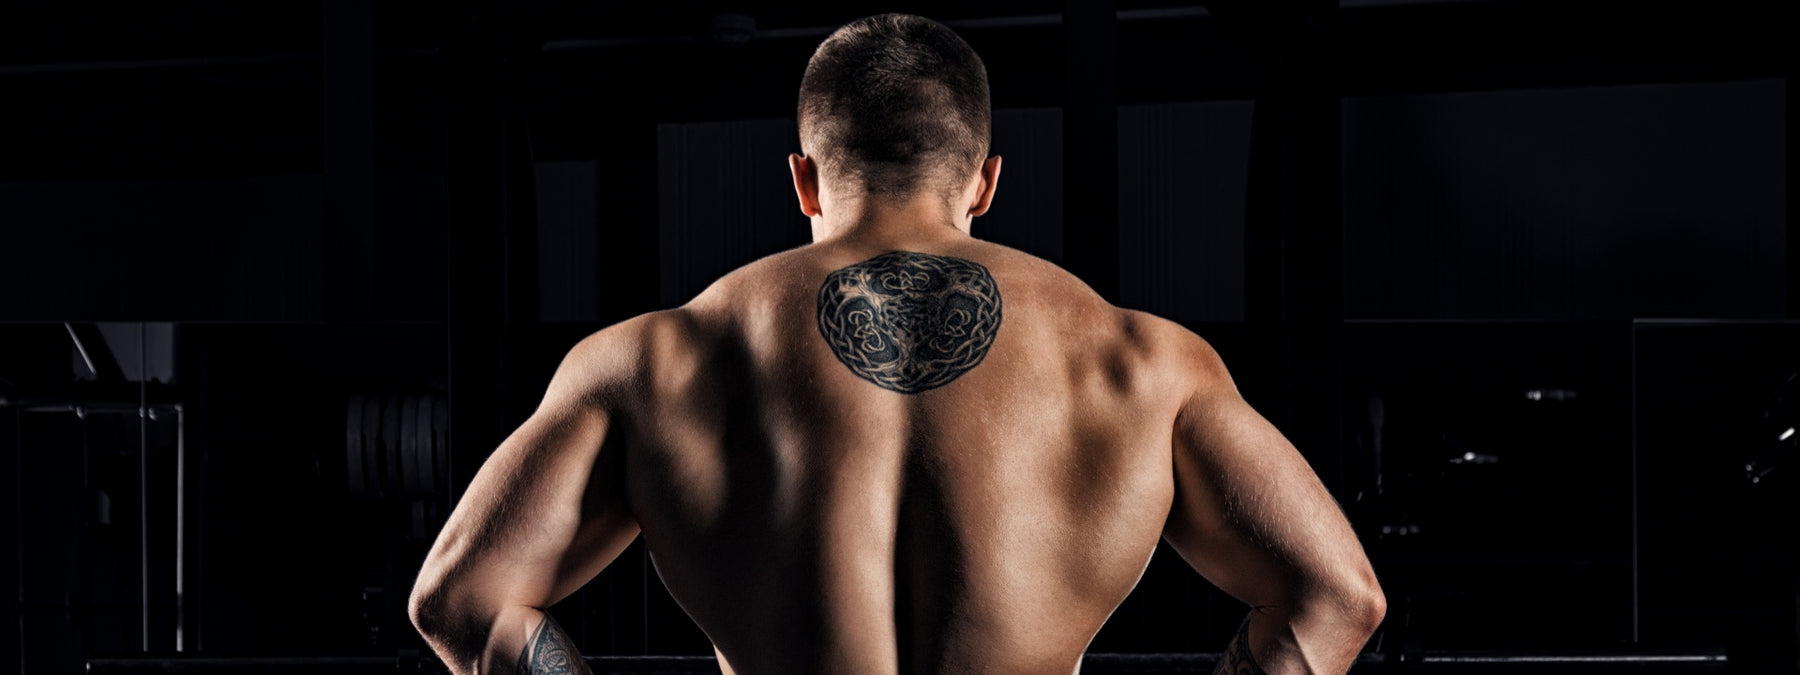 5 Best Back Exercises You've Never Heard Of